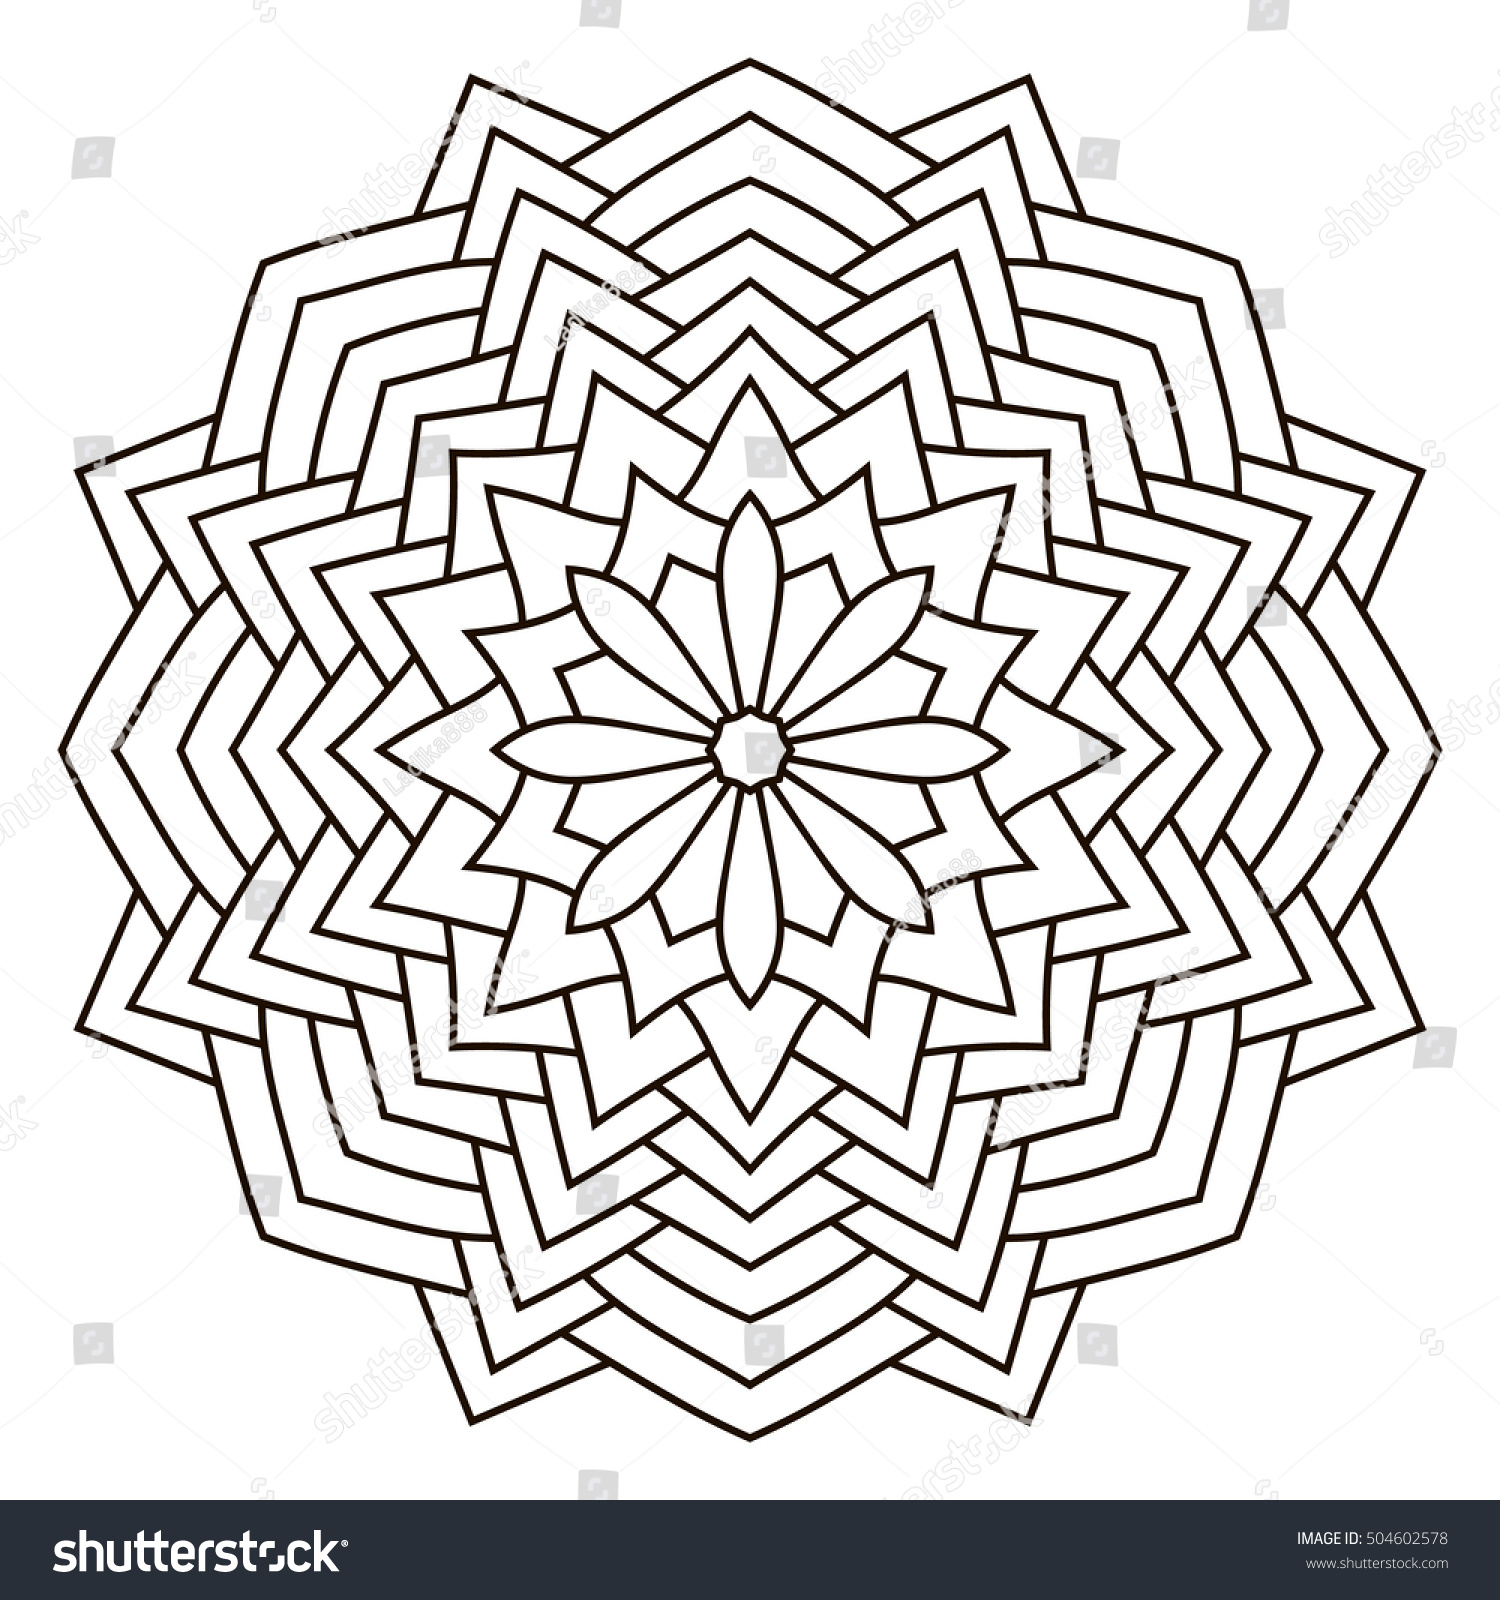 Round Outline Mandala Coloring Book Vintage Stock Vector (Royalty ...